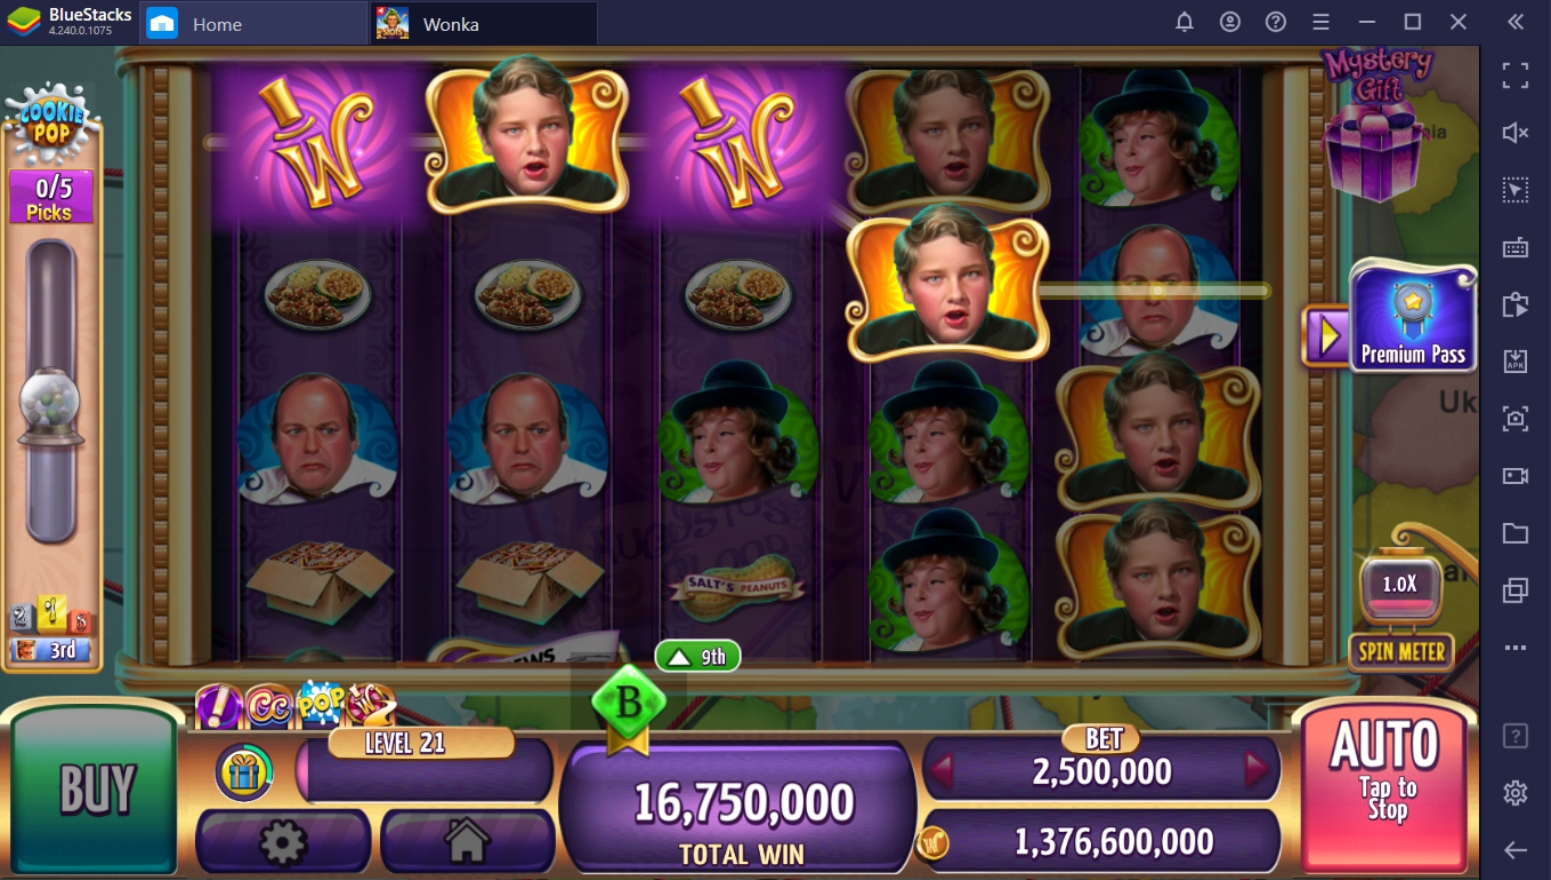 Beginner's Guide to Playing Willy Wonka Casino on PC